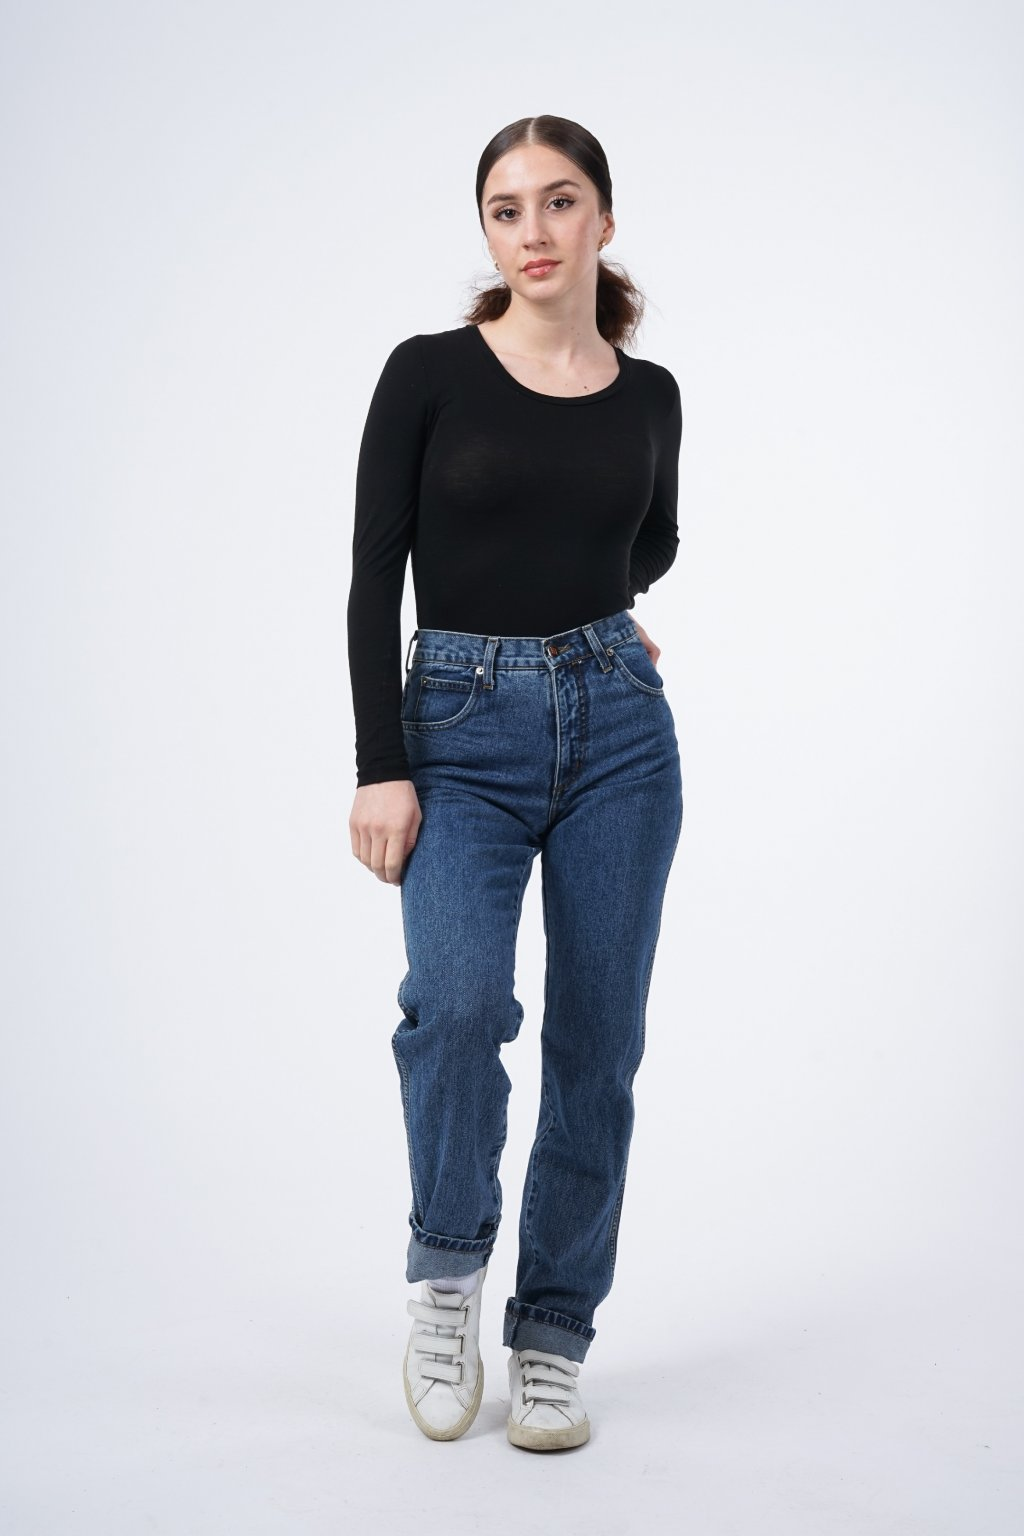 Jeans (27/32)